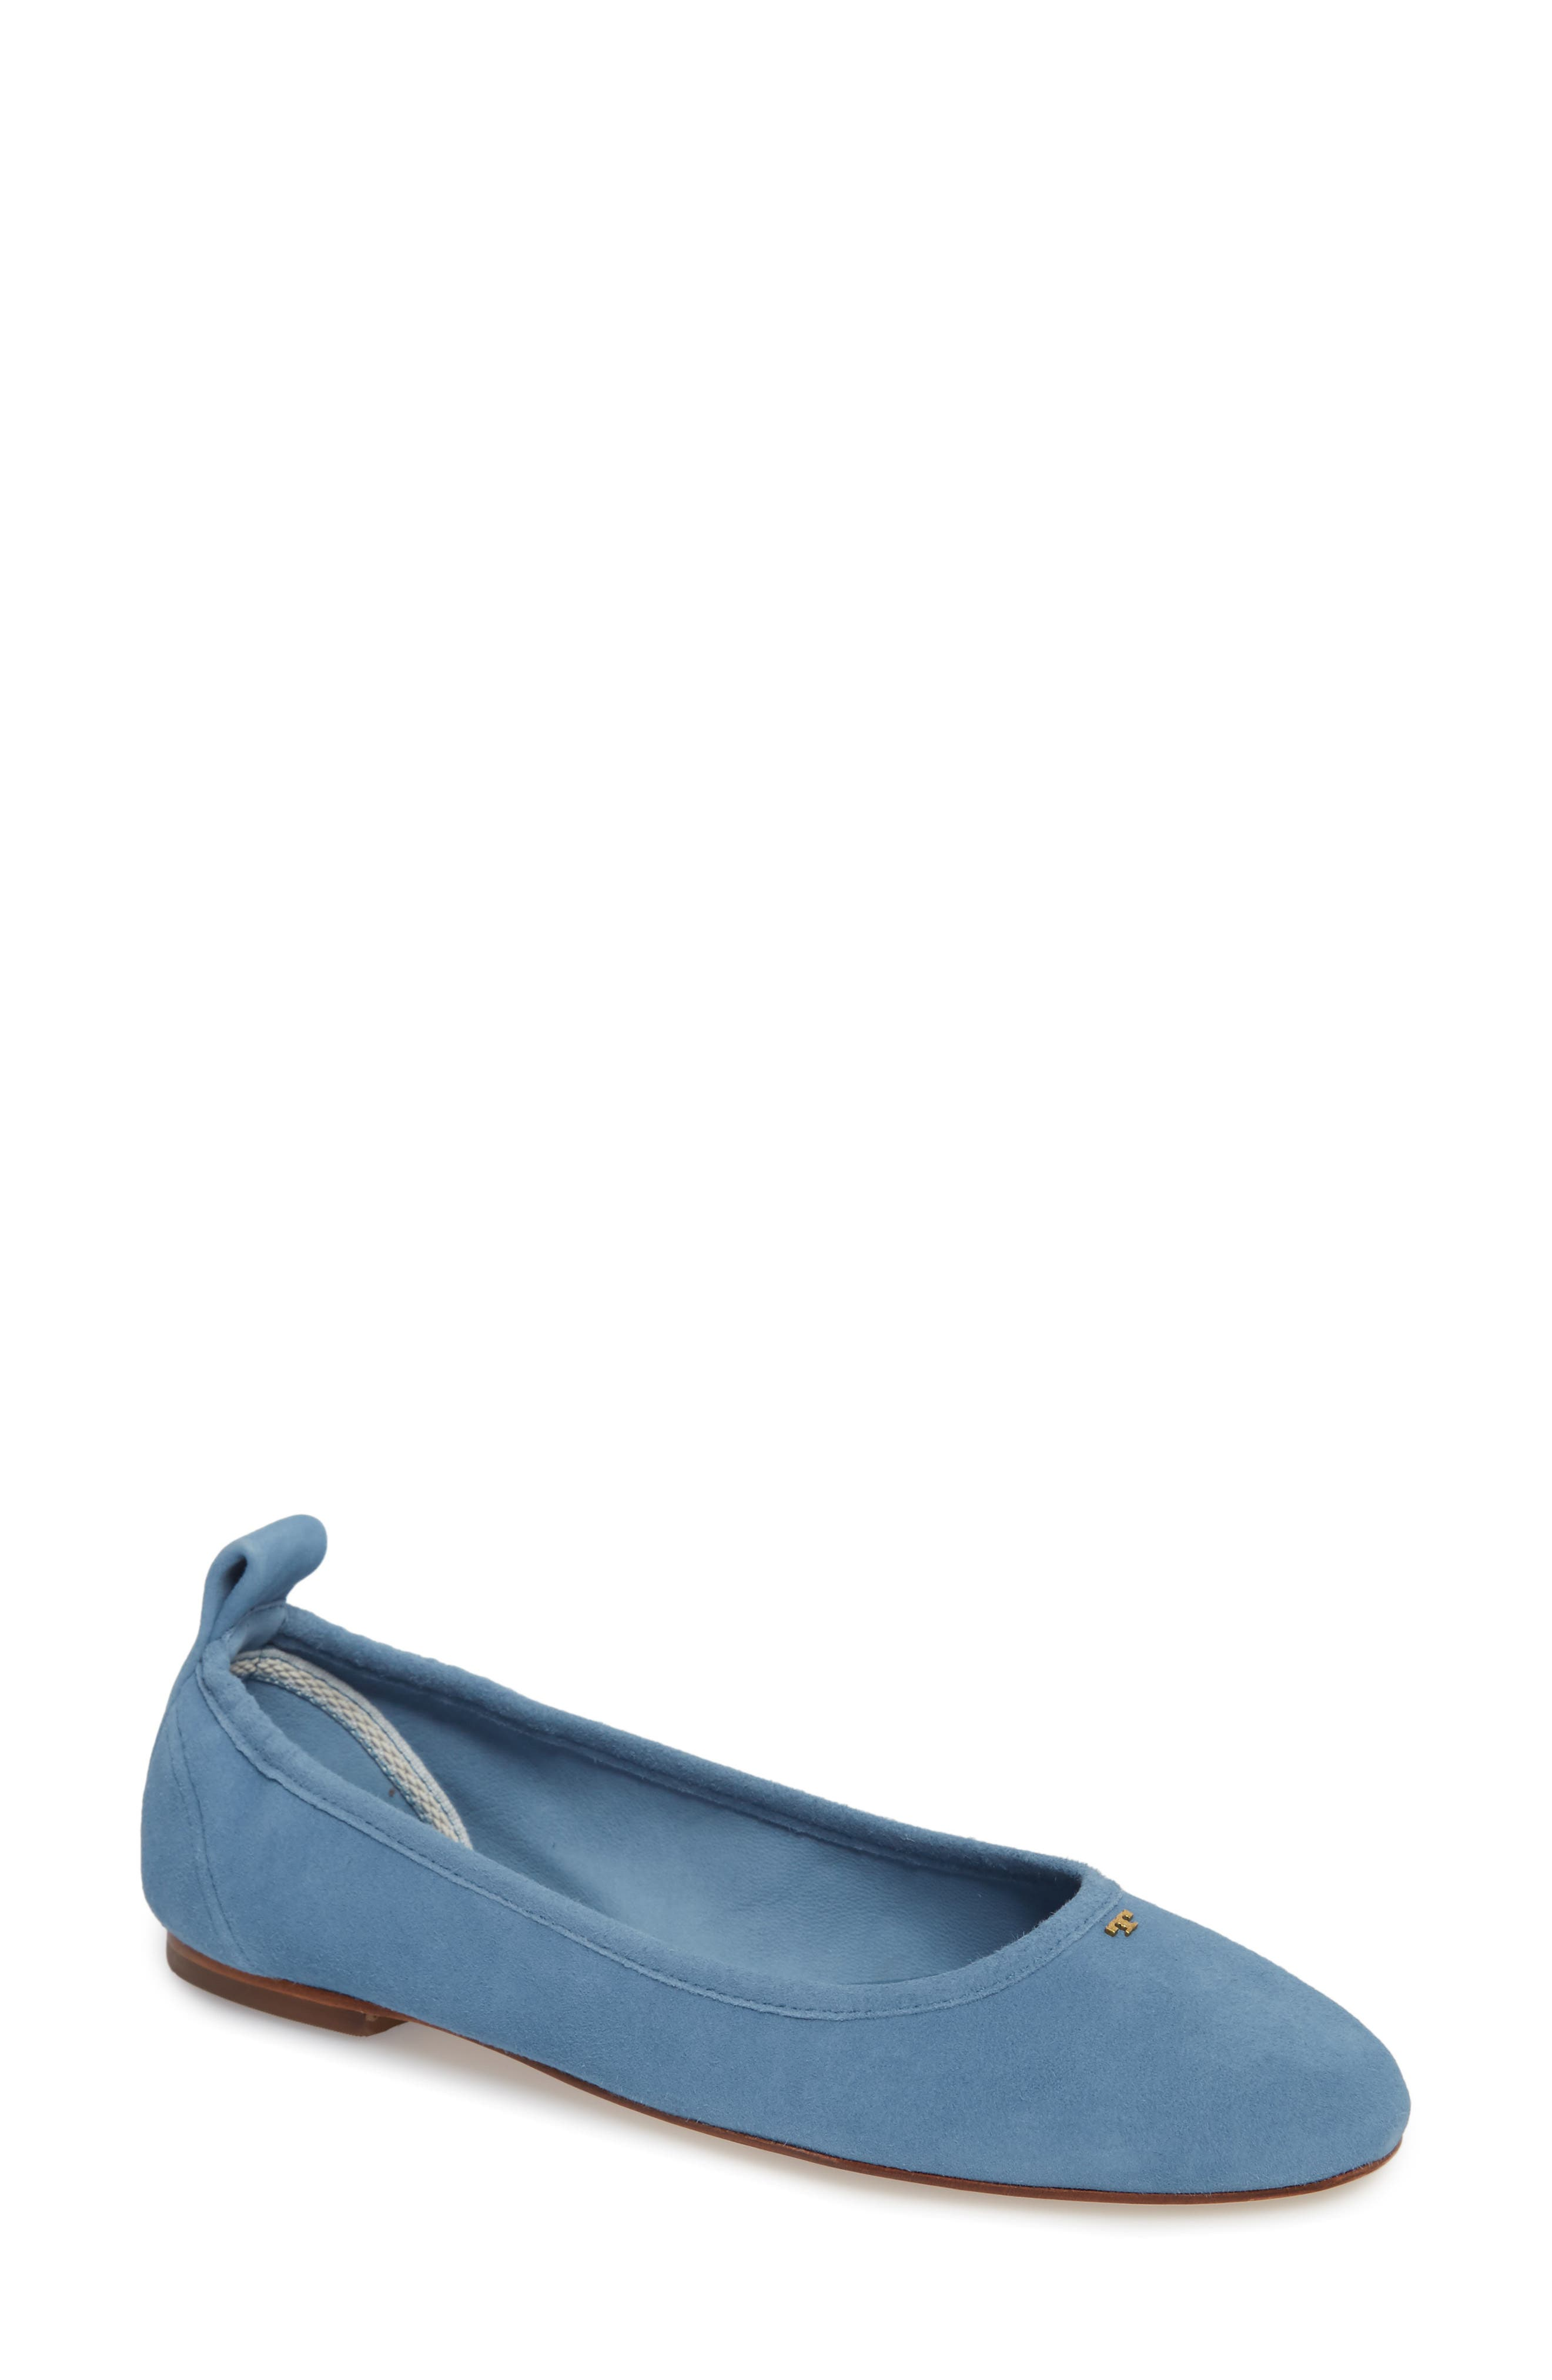 Therese Ballet Flat,                         Main,                         color, Blue Yonder